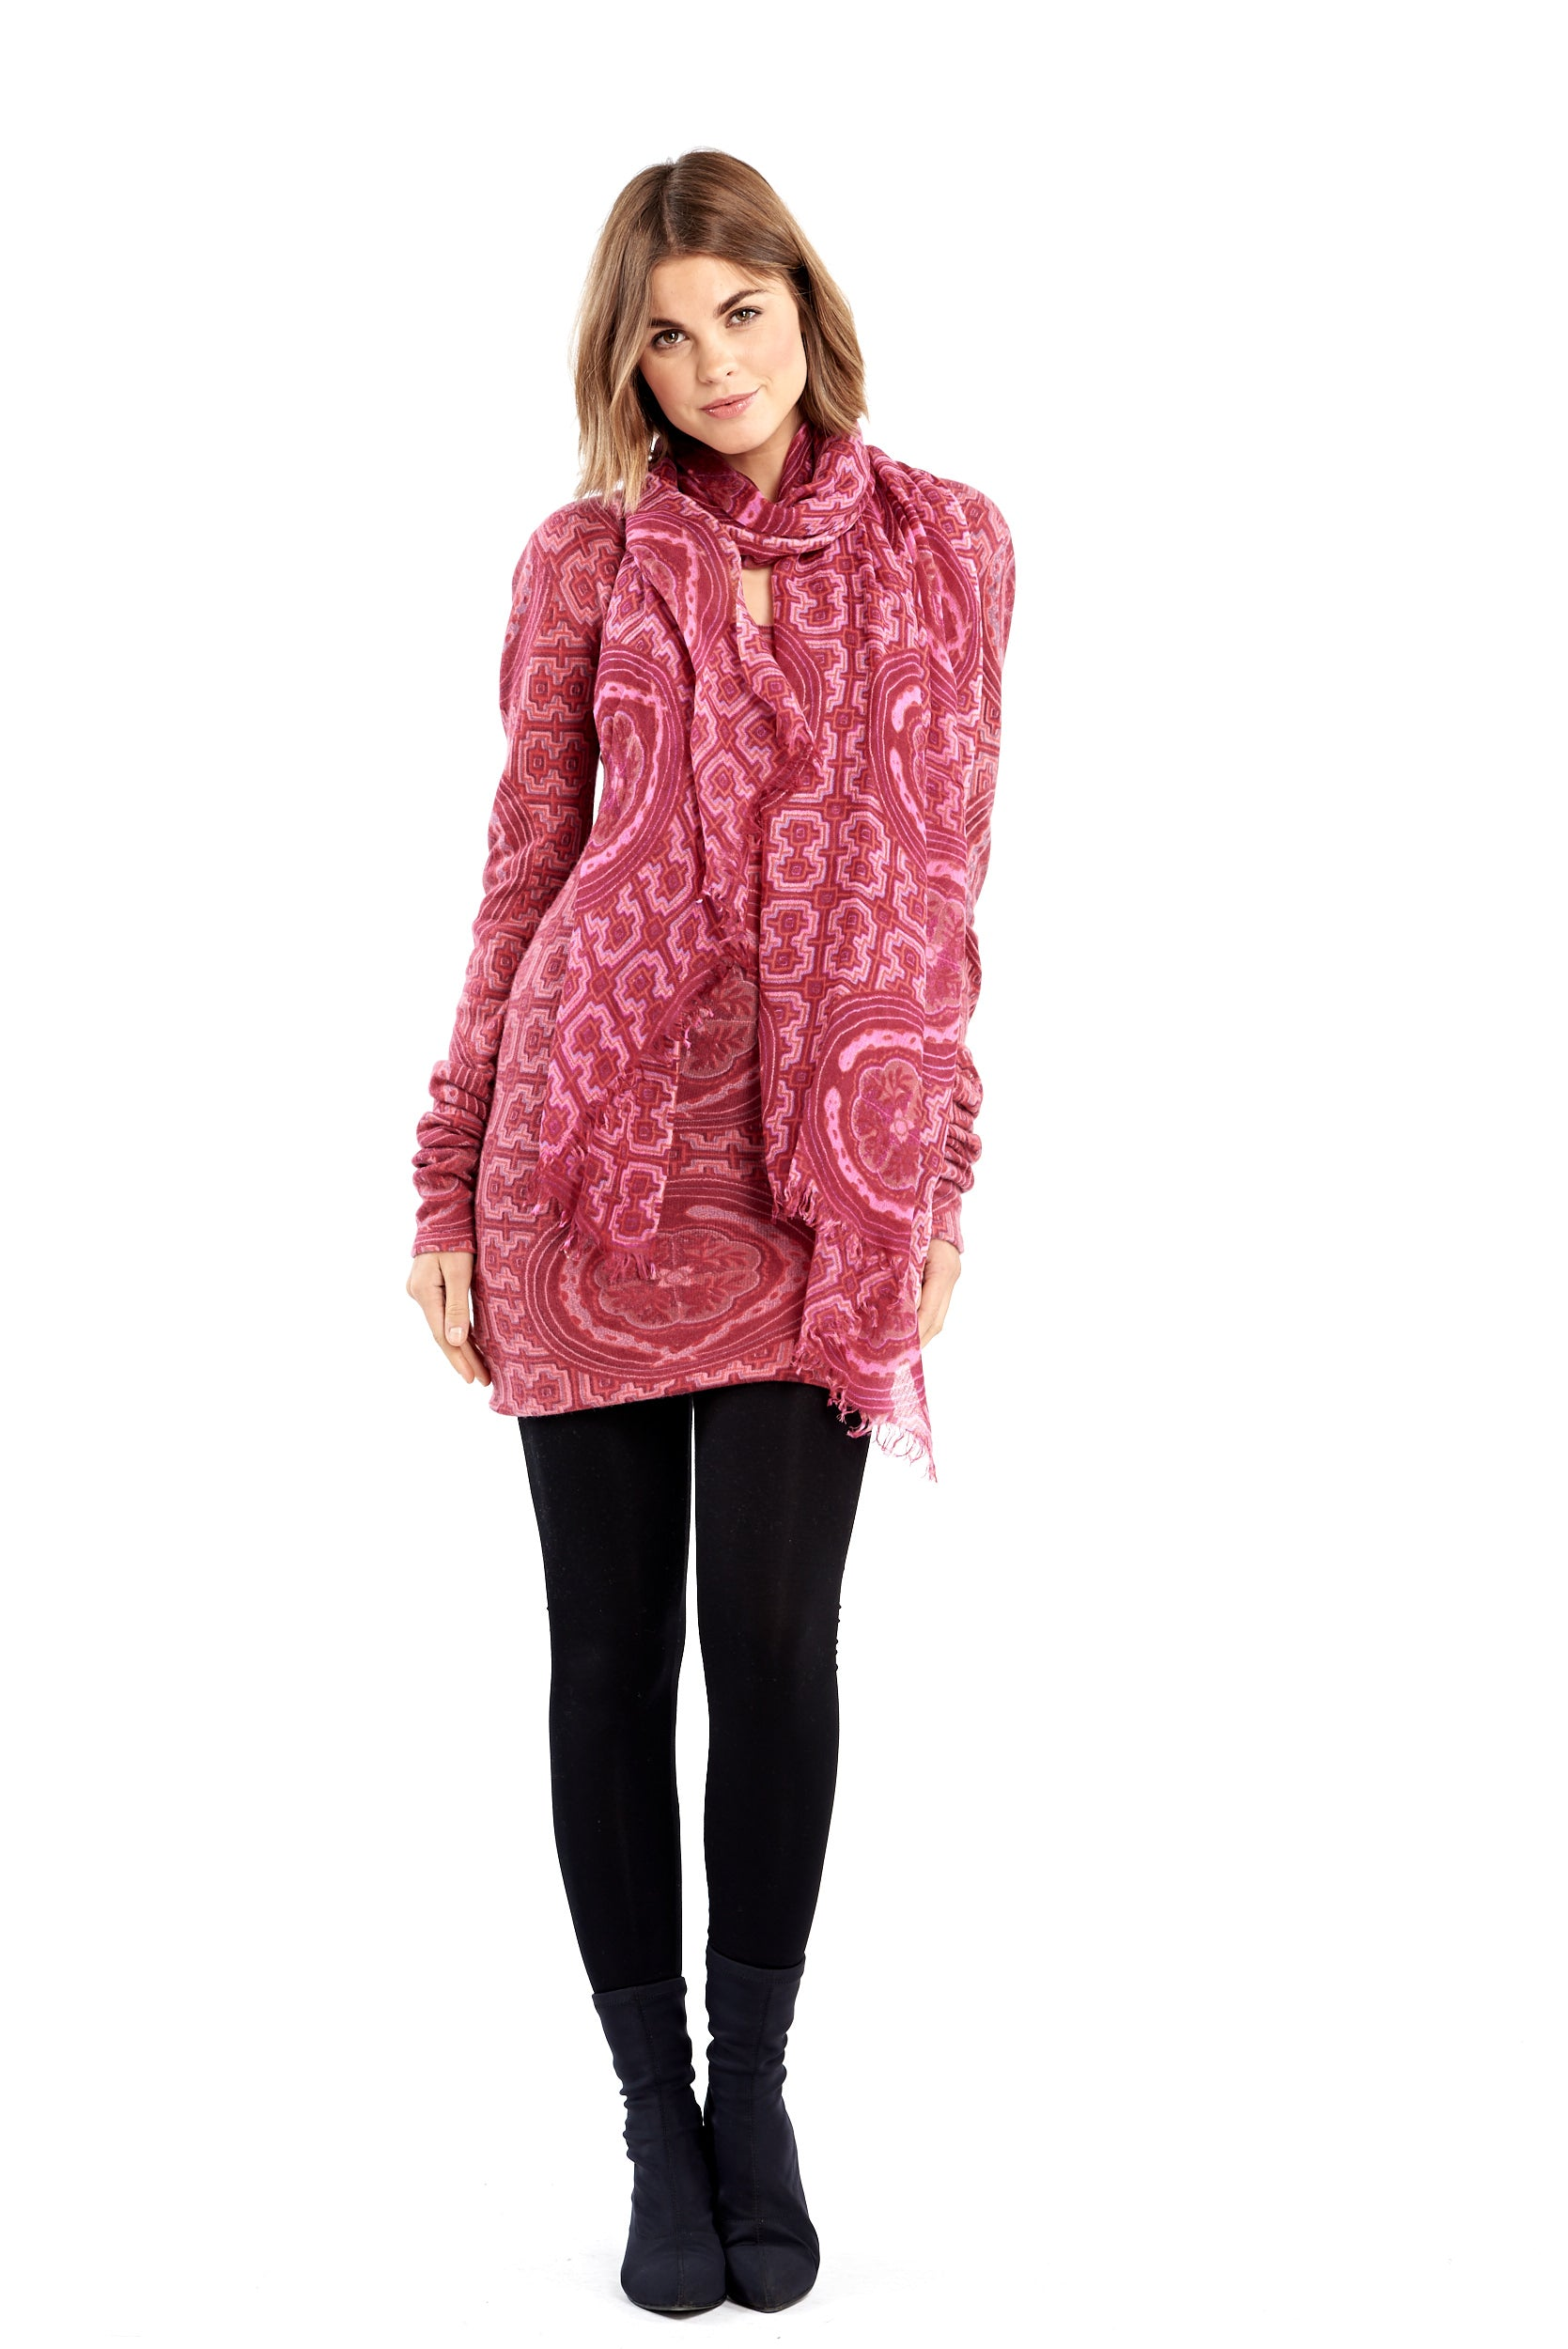 Shipibo Inspired Cashmere Fitted Jumper Dress Pink/Purple